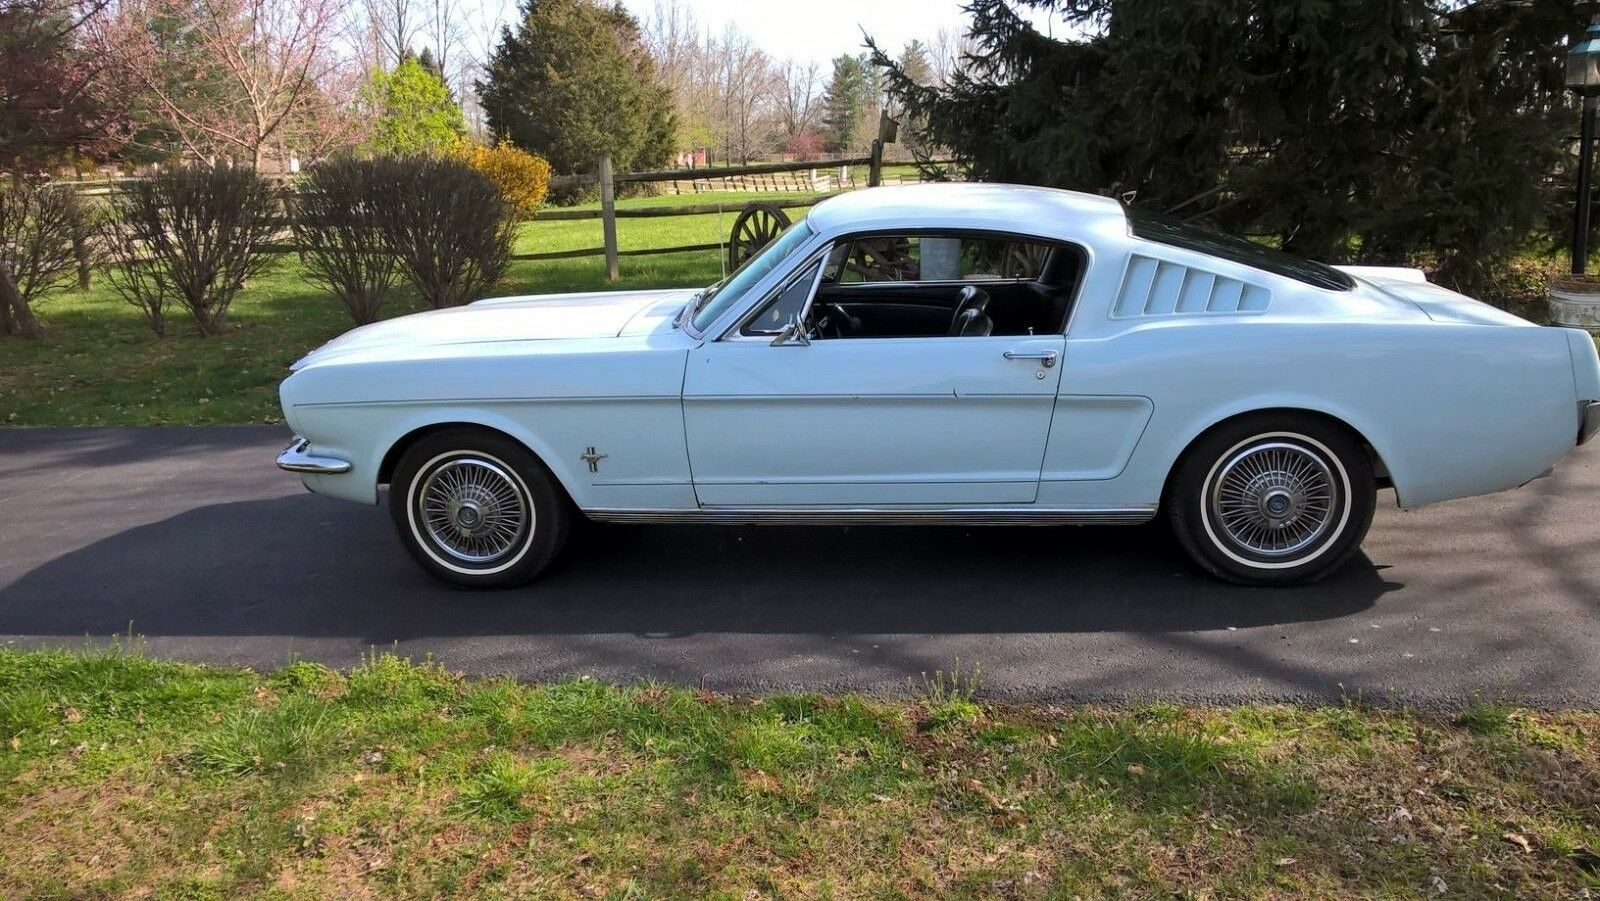 1966 ford mustang 2 2 fastback used ford mustang for sale in punta gorda florida vehicles. Black Bedroom Furniture Sets. Home Design Ideas